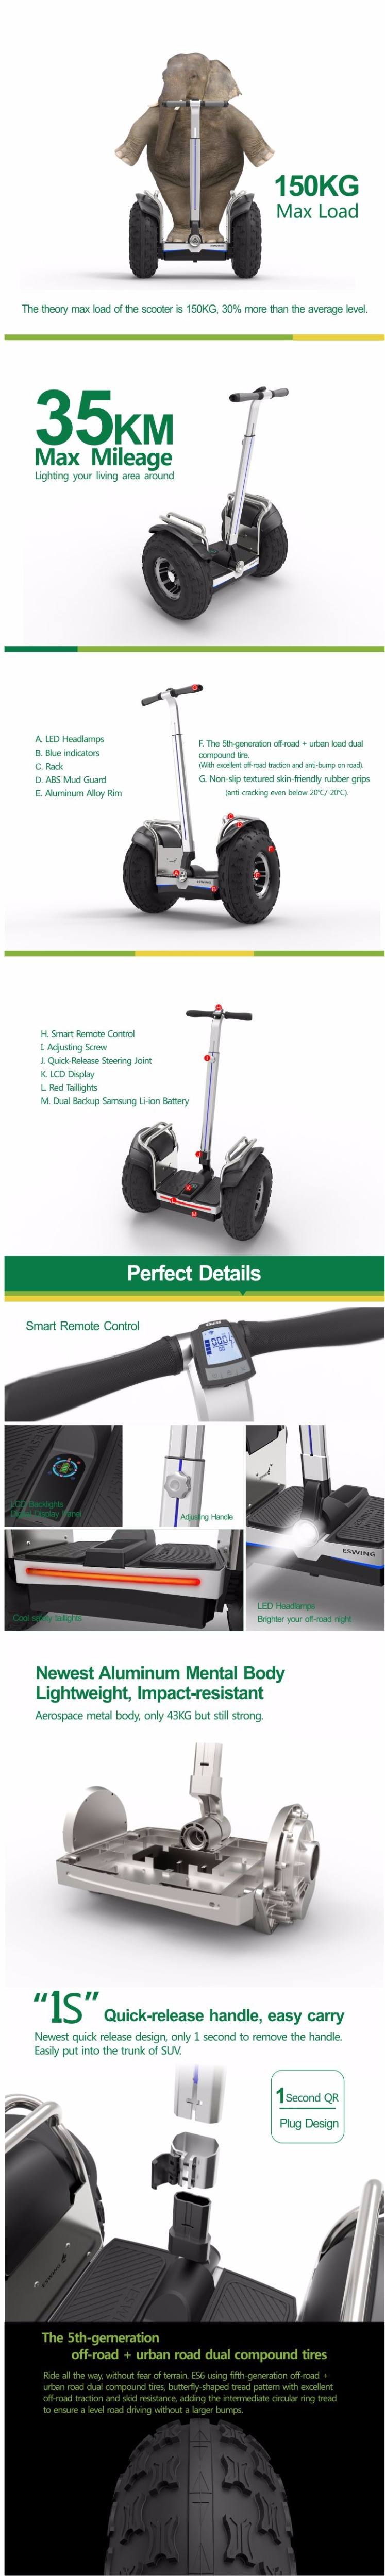 No Tax Self Balance Scooters Leg Control Cross Country 2 Wheel 2400W 19inch Electric Scooter 72V Samsung Battery Hoverboard  (185)